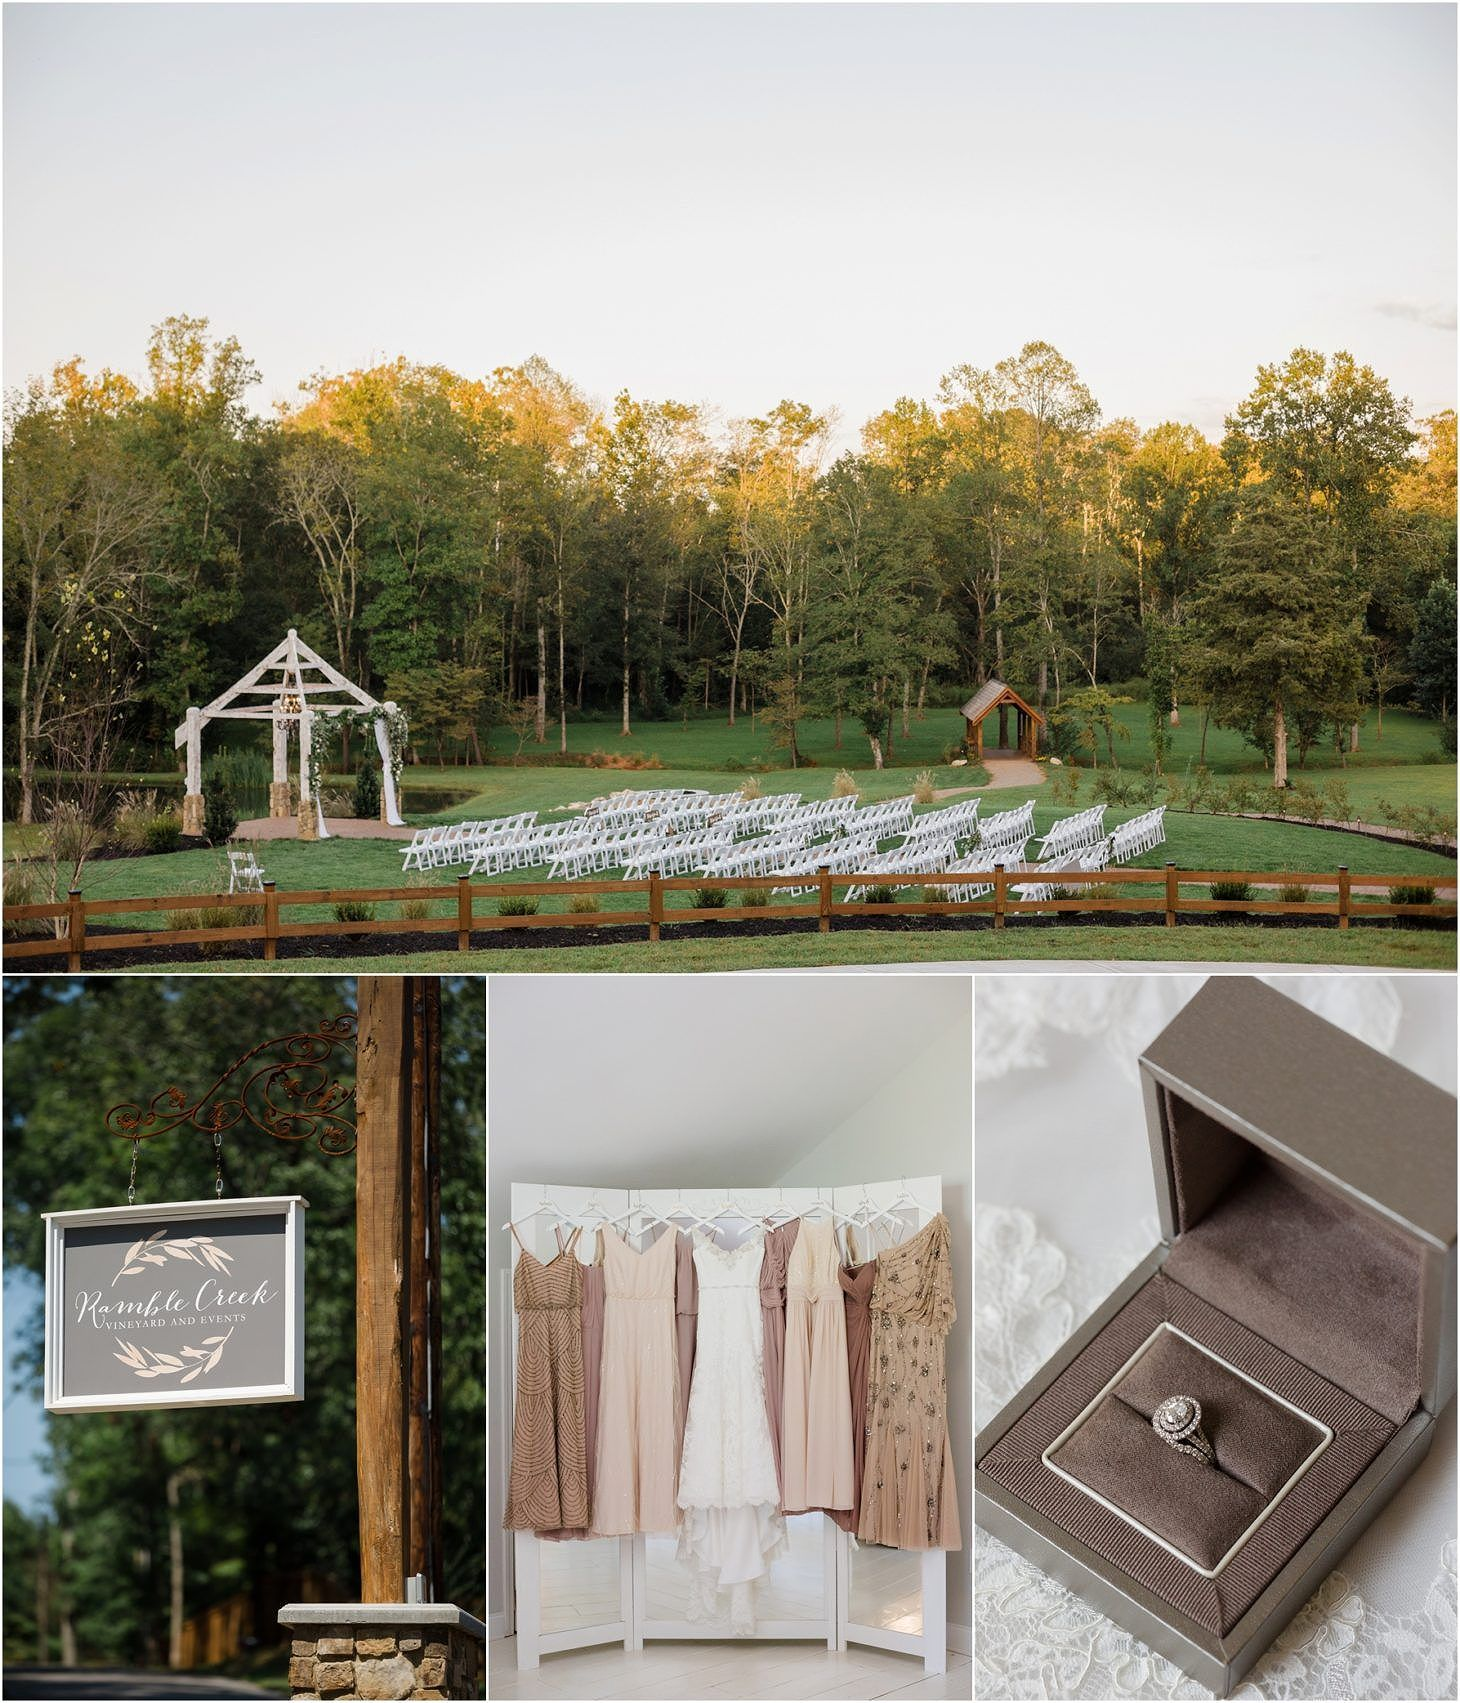 Ramble Creek Is A Knoxville Area Wedding Venue In